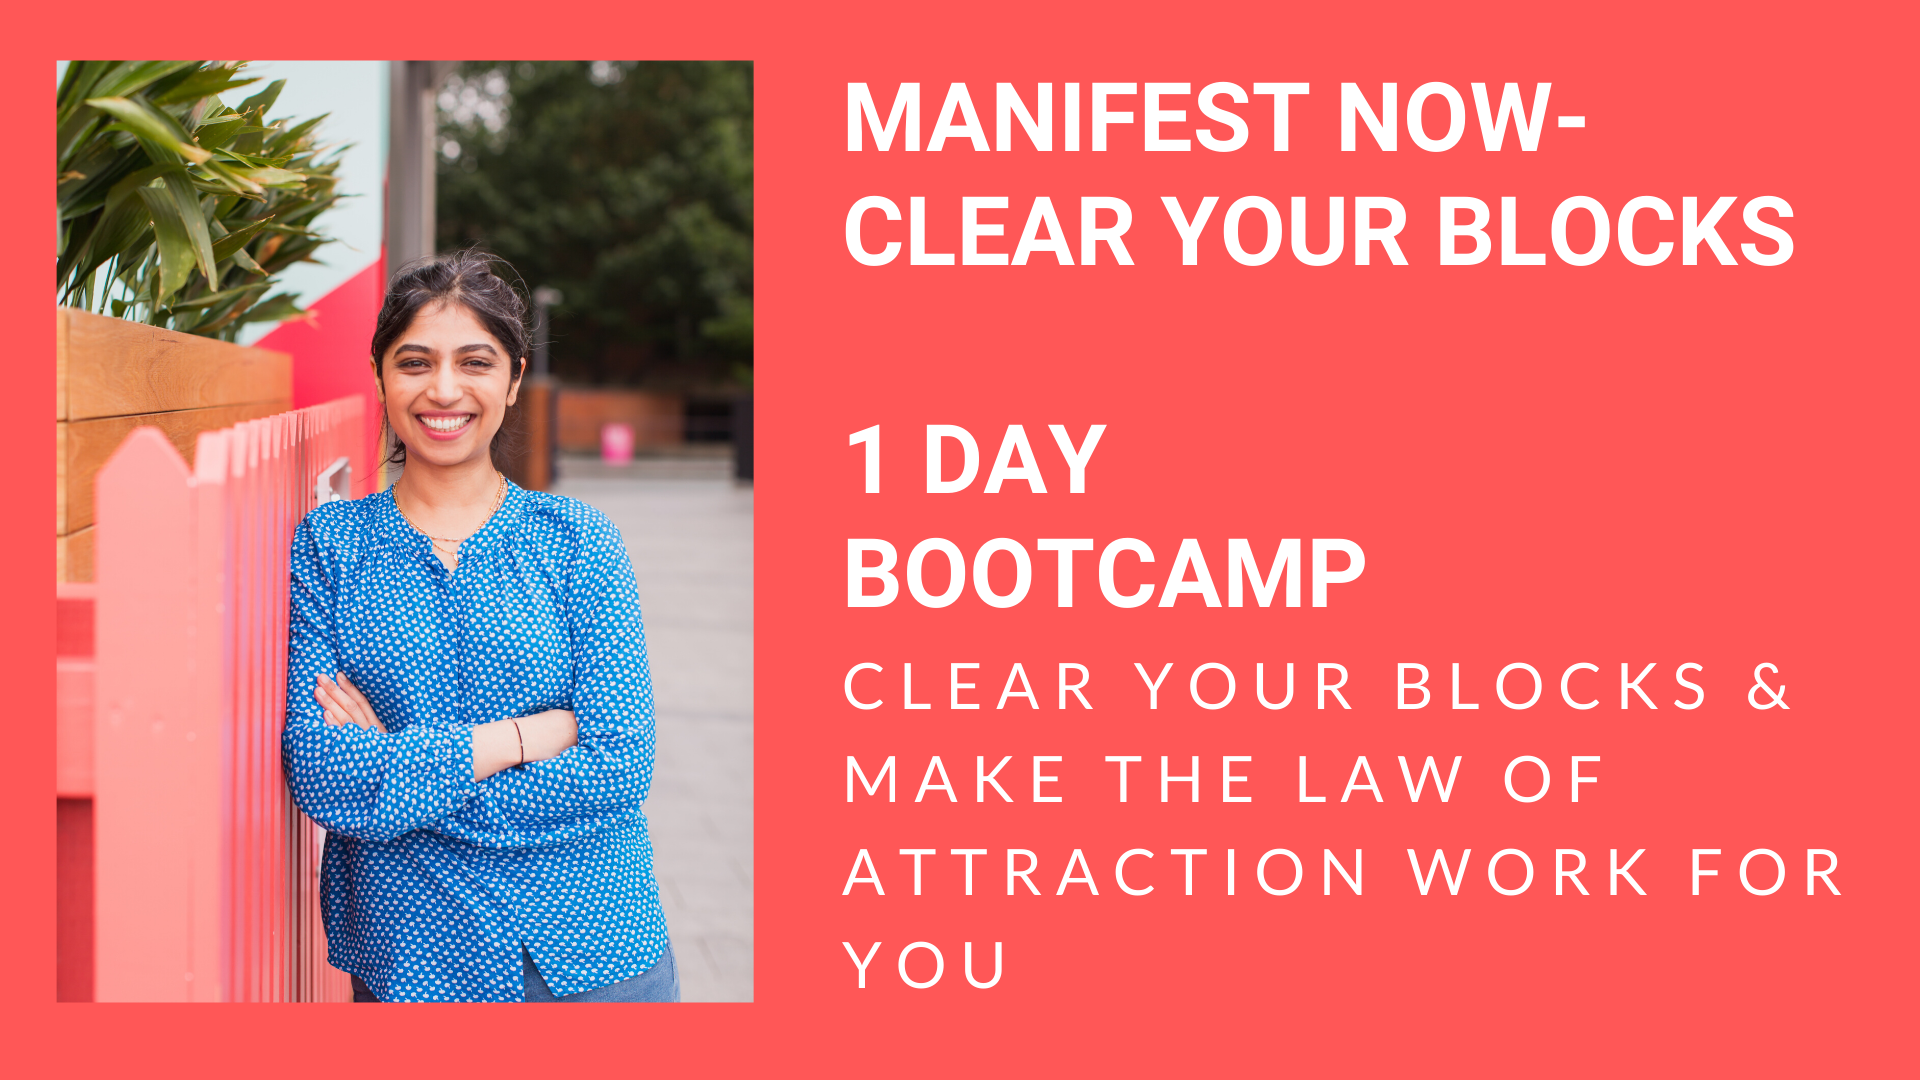 Manifest Now! Clear Blocks 1 DAY BOOTCAMP